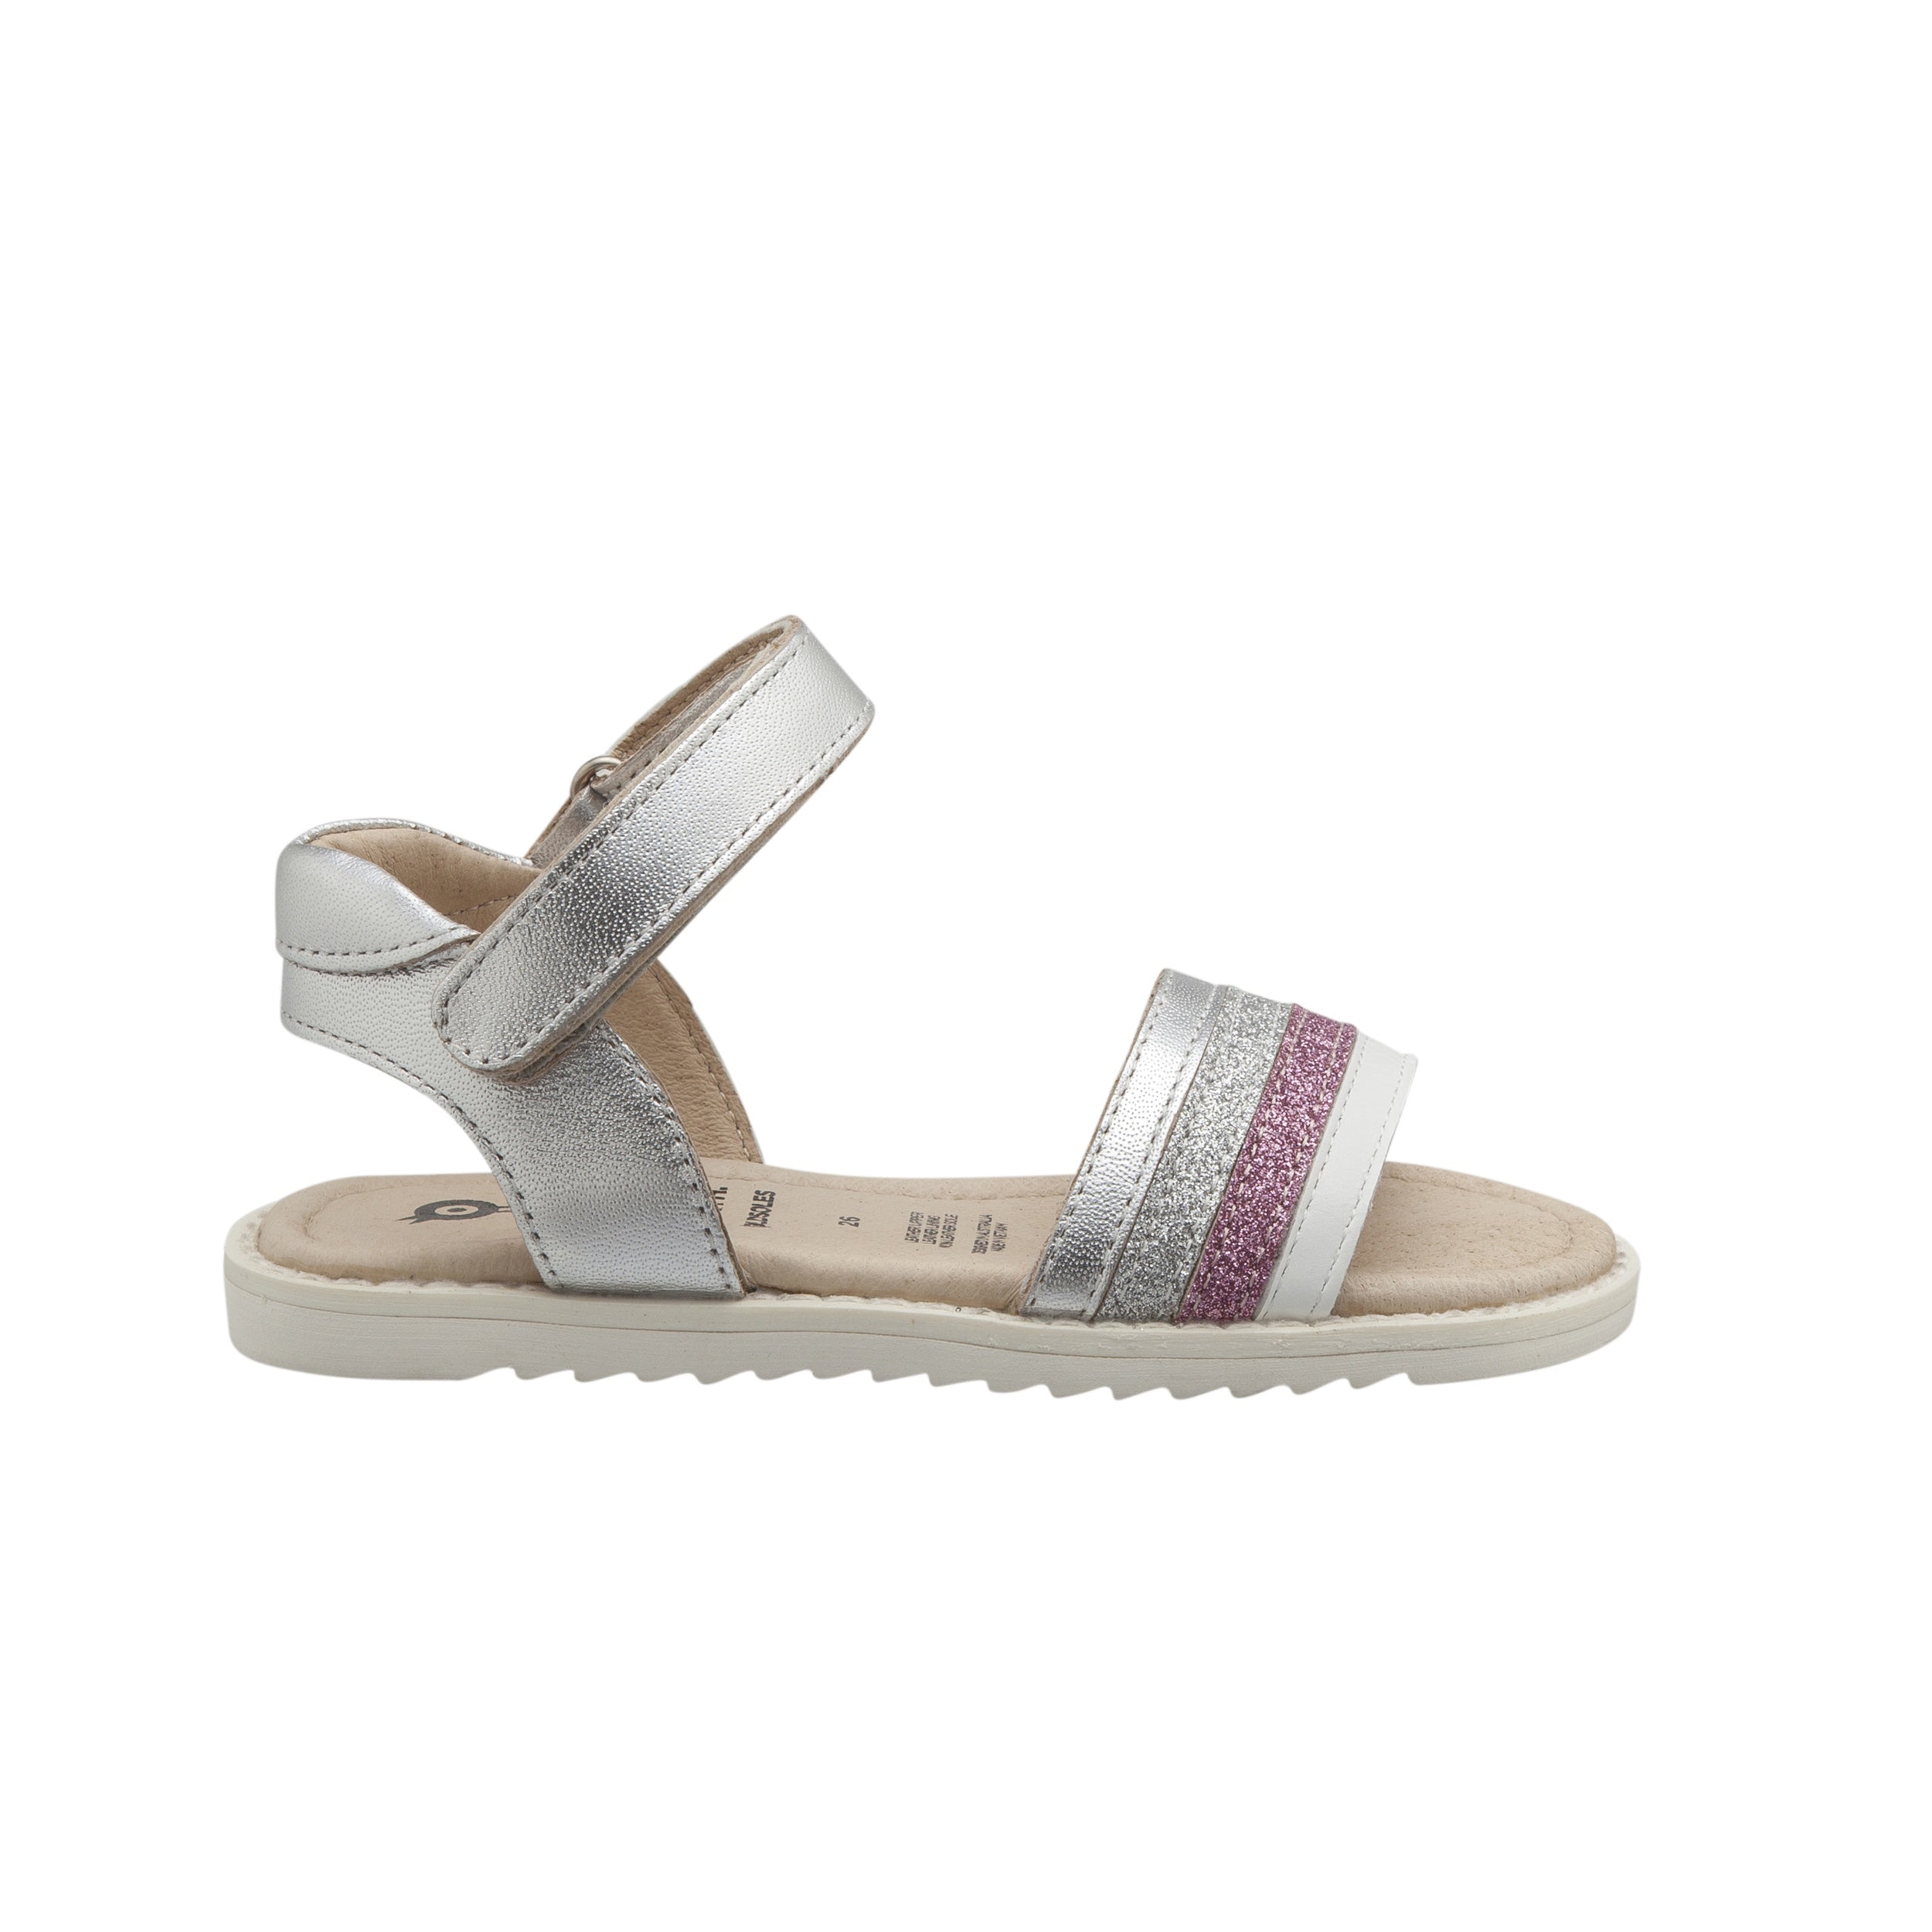 Pop Colour Sandal. Old Sole summer sandals. shop local in store or online at Sticky Fingers Childrens Boutique, Niddrie, Melbourne.